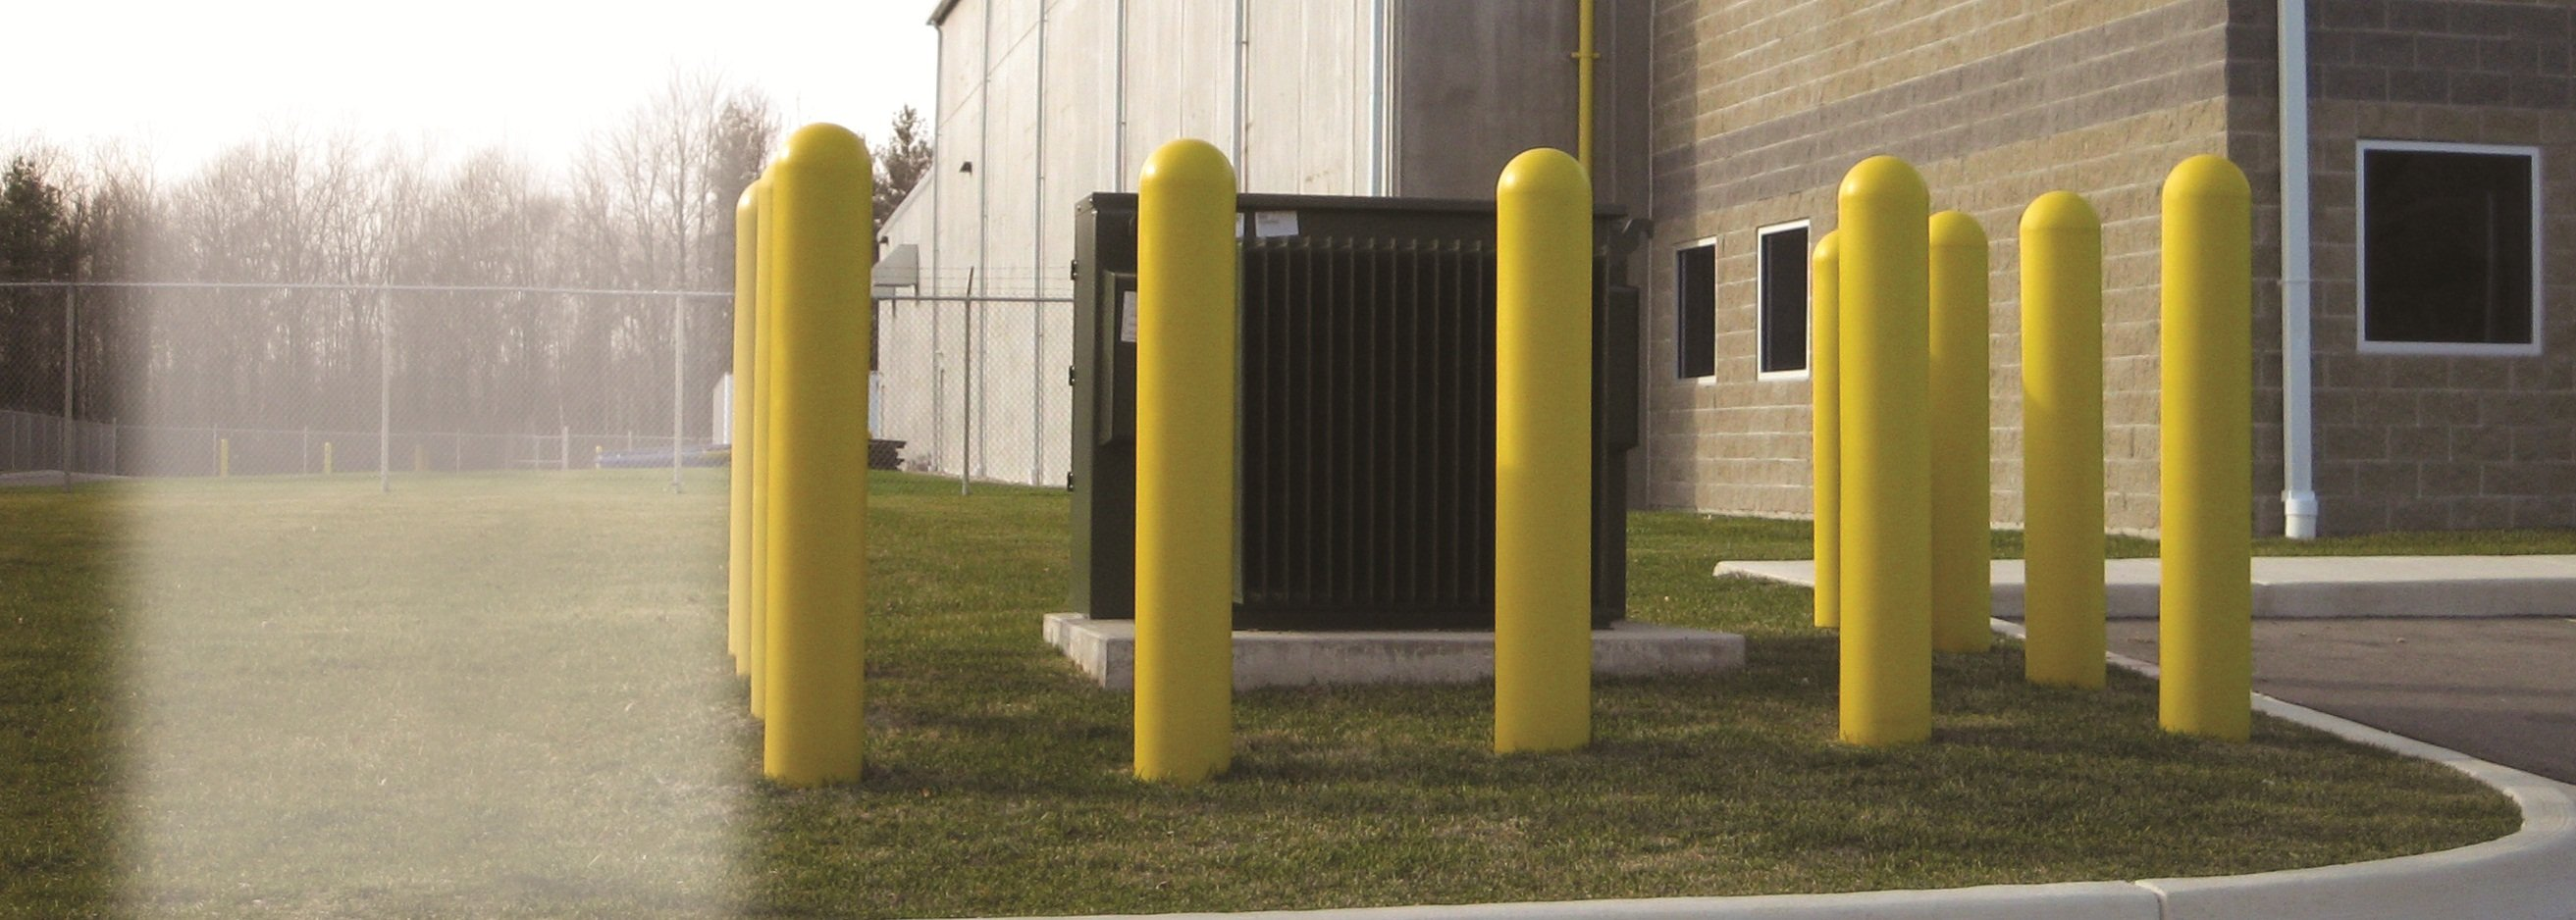 Yellow Precast Concrete Safety Bollards Surrounding Hydro Box